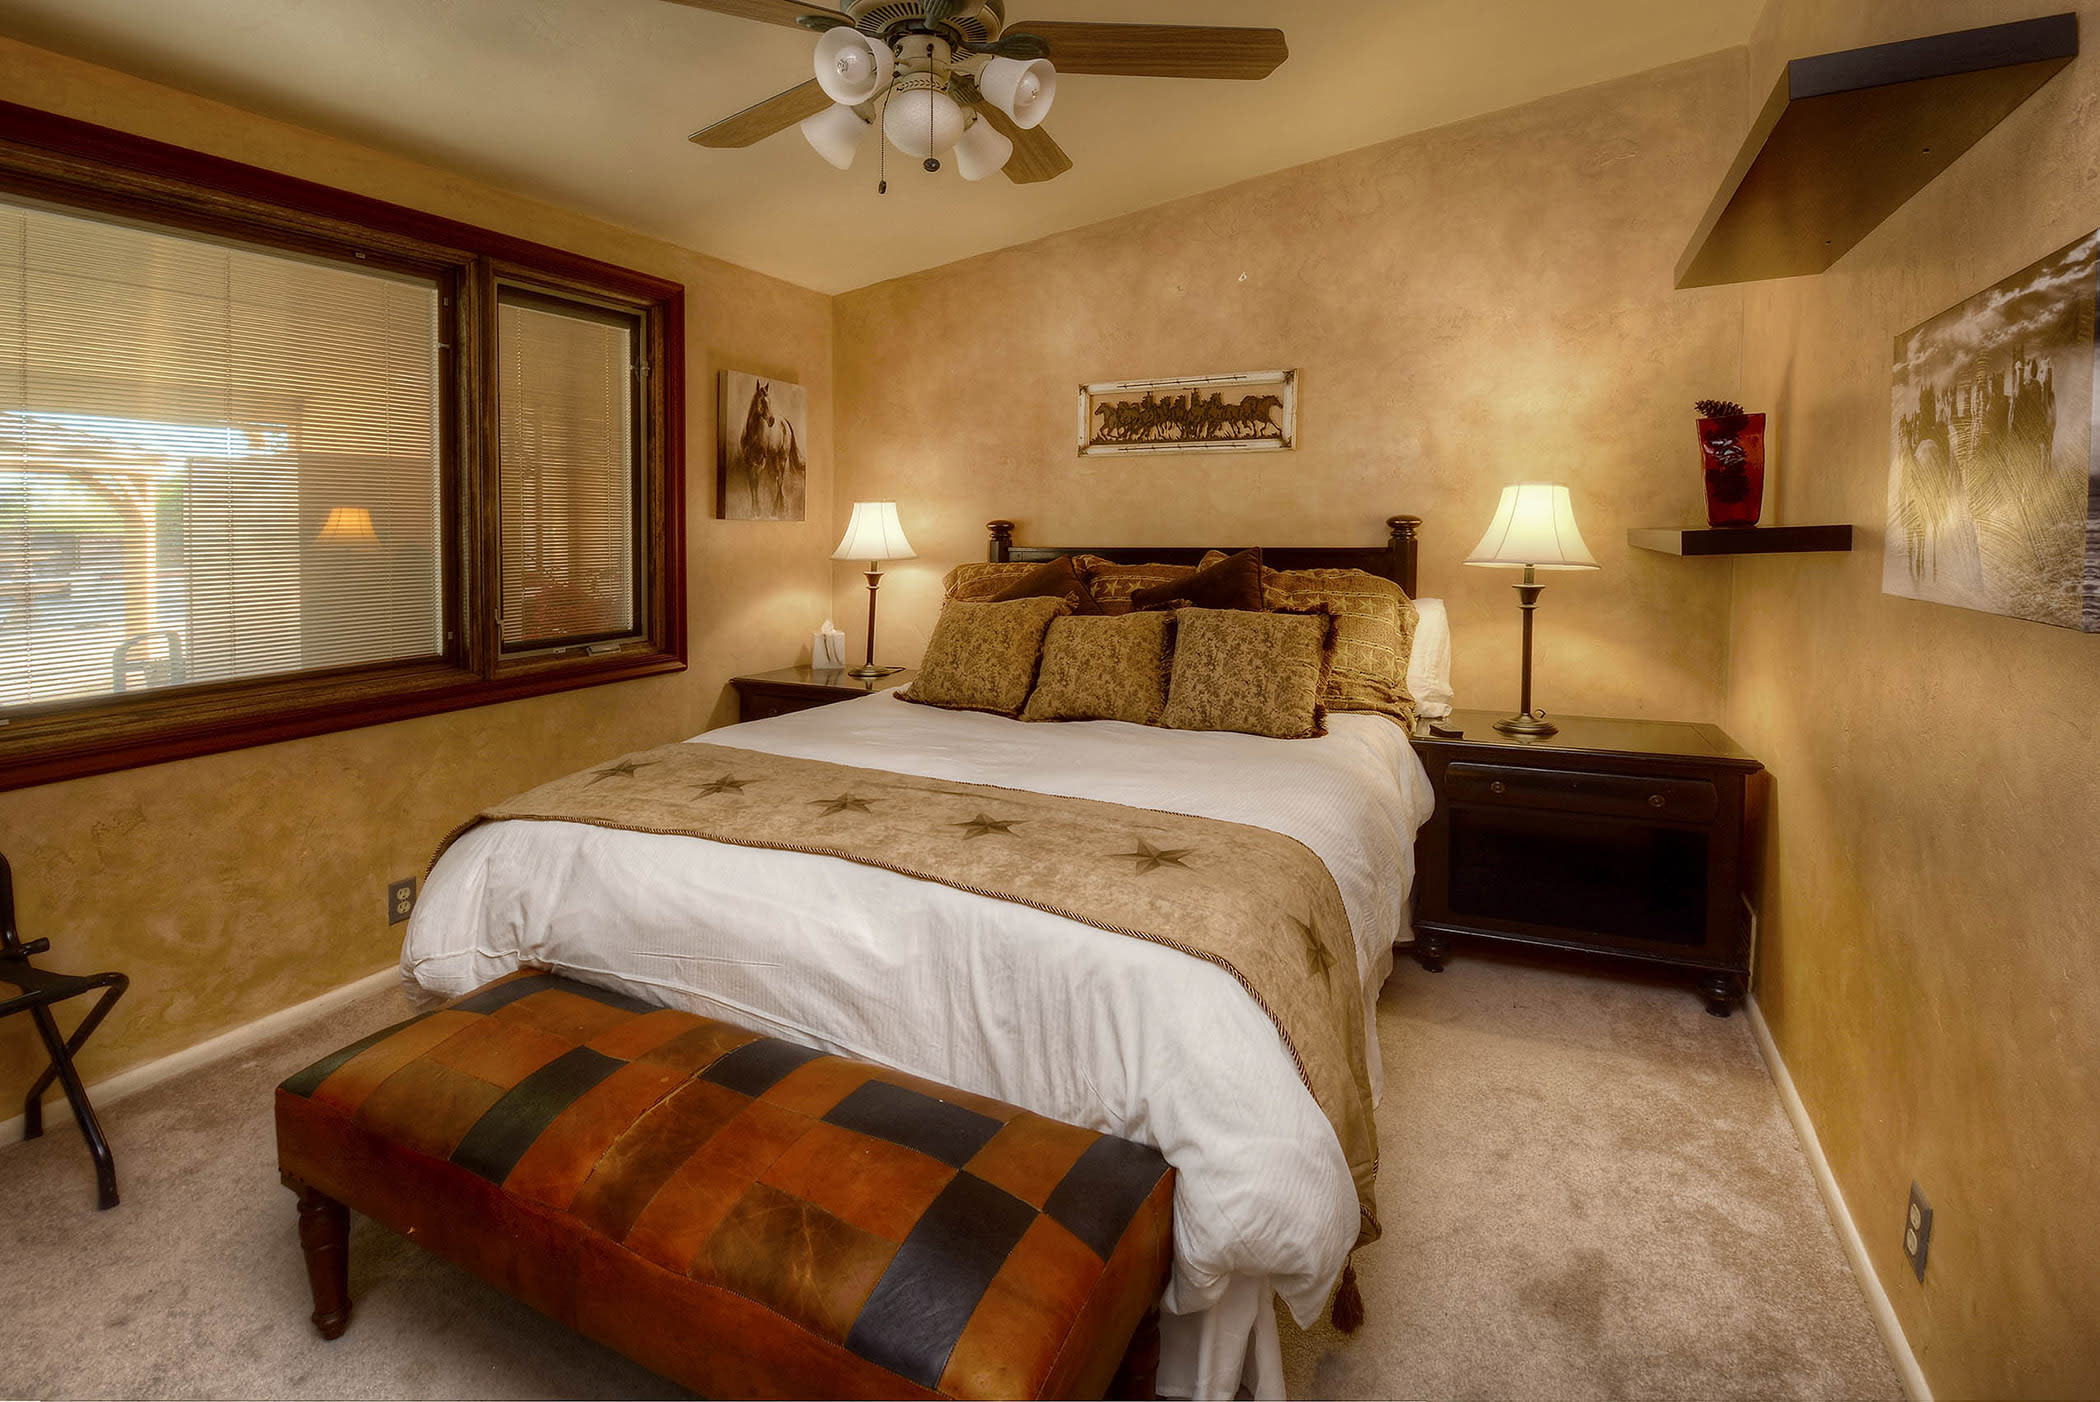 This bedroom also offers a comfy queen bed.